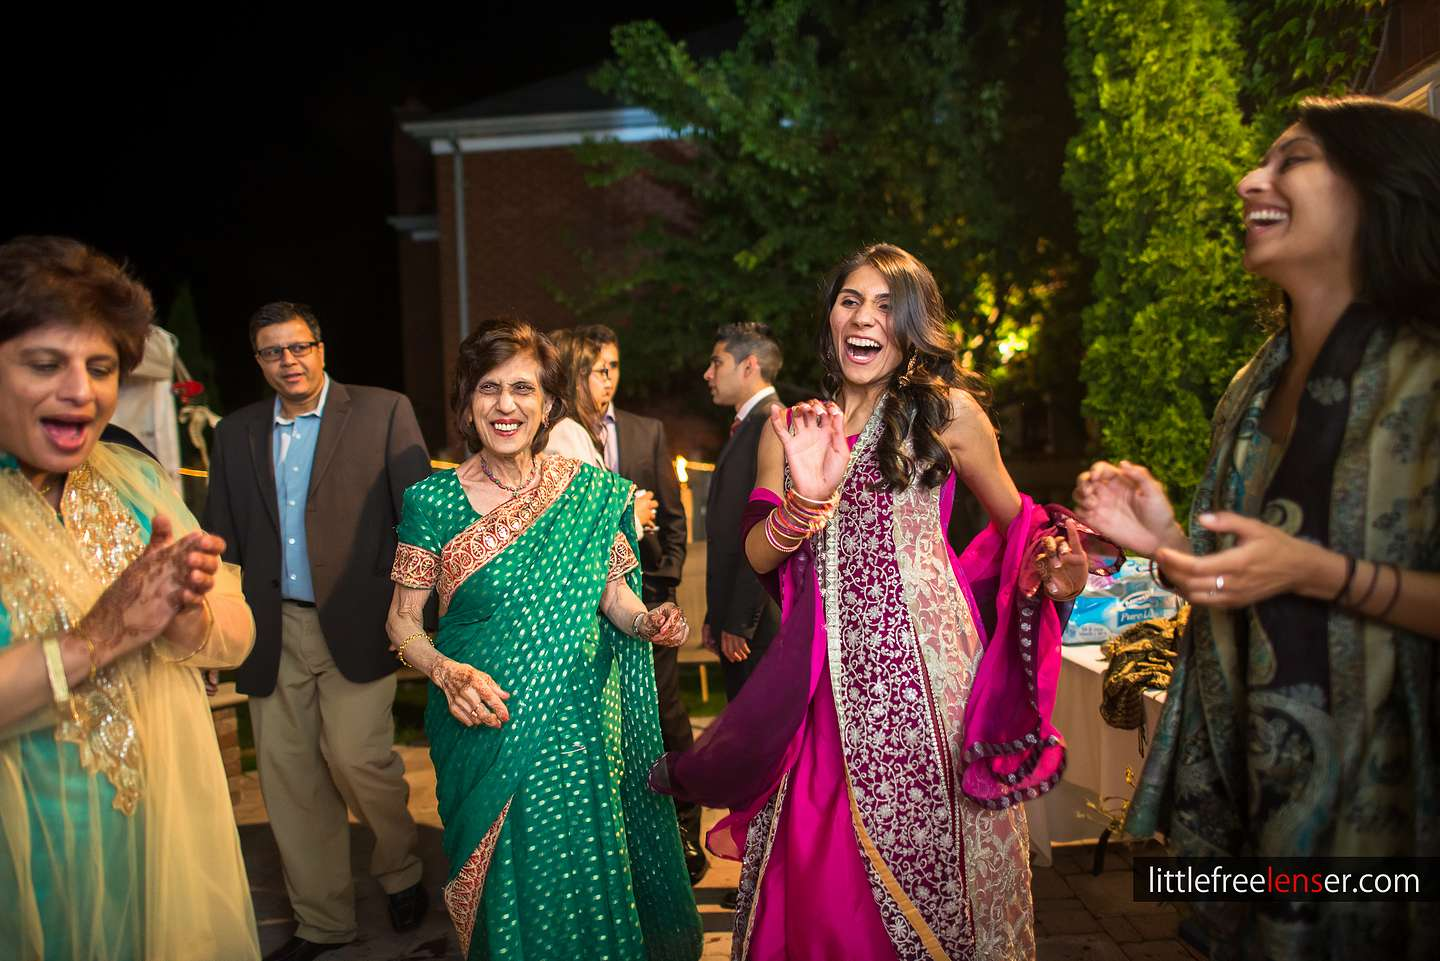 tn_alisha&ayaz_engagementparty_24